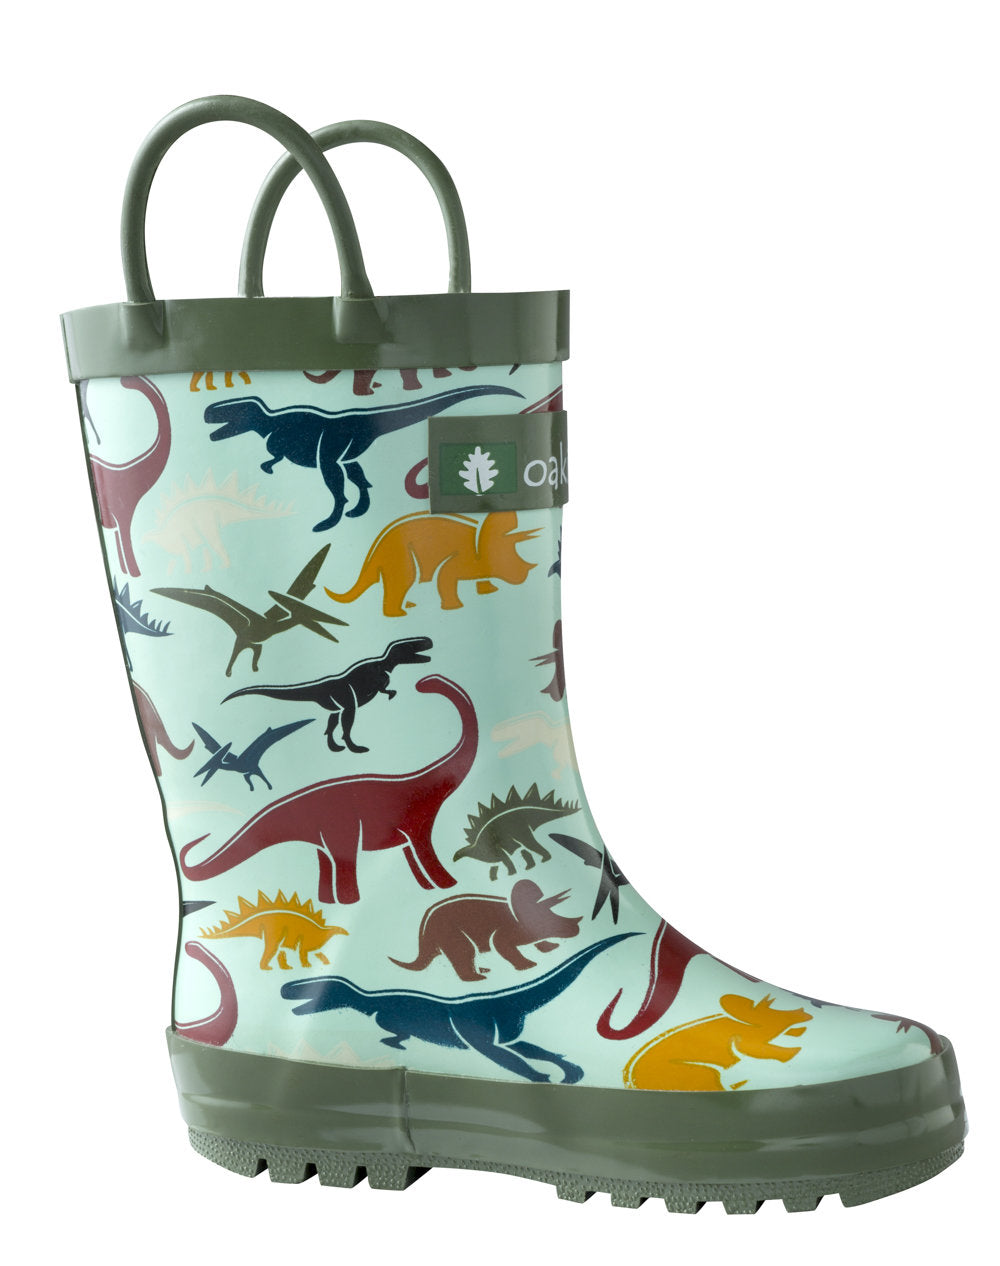 Earthy Dinosaurs Loop Handle Rubber Rain Boots